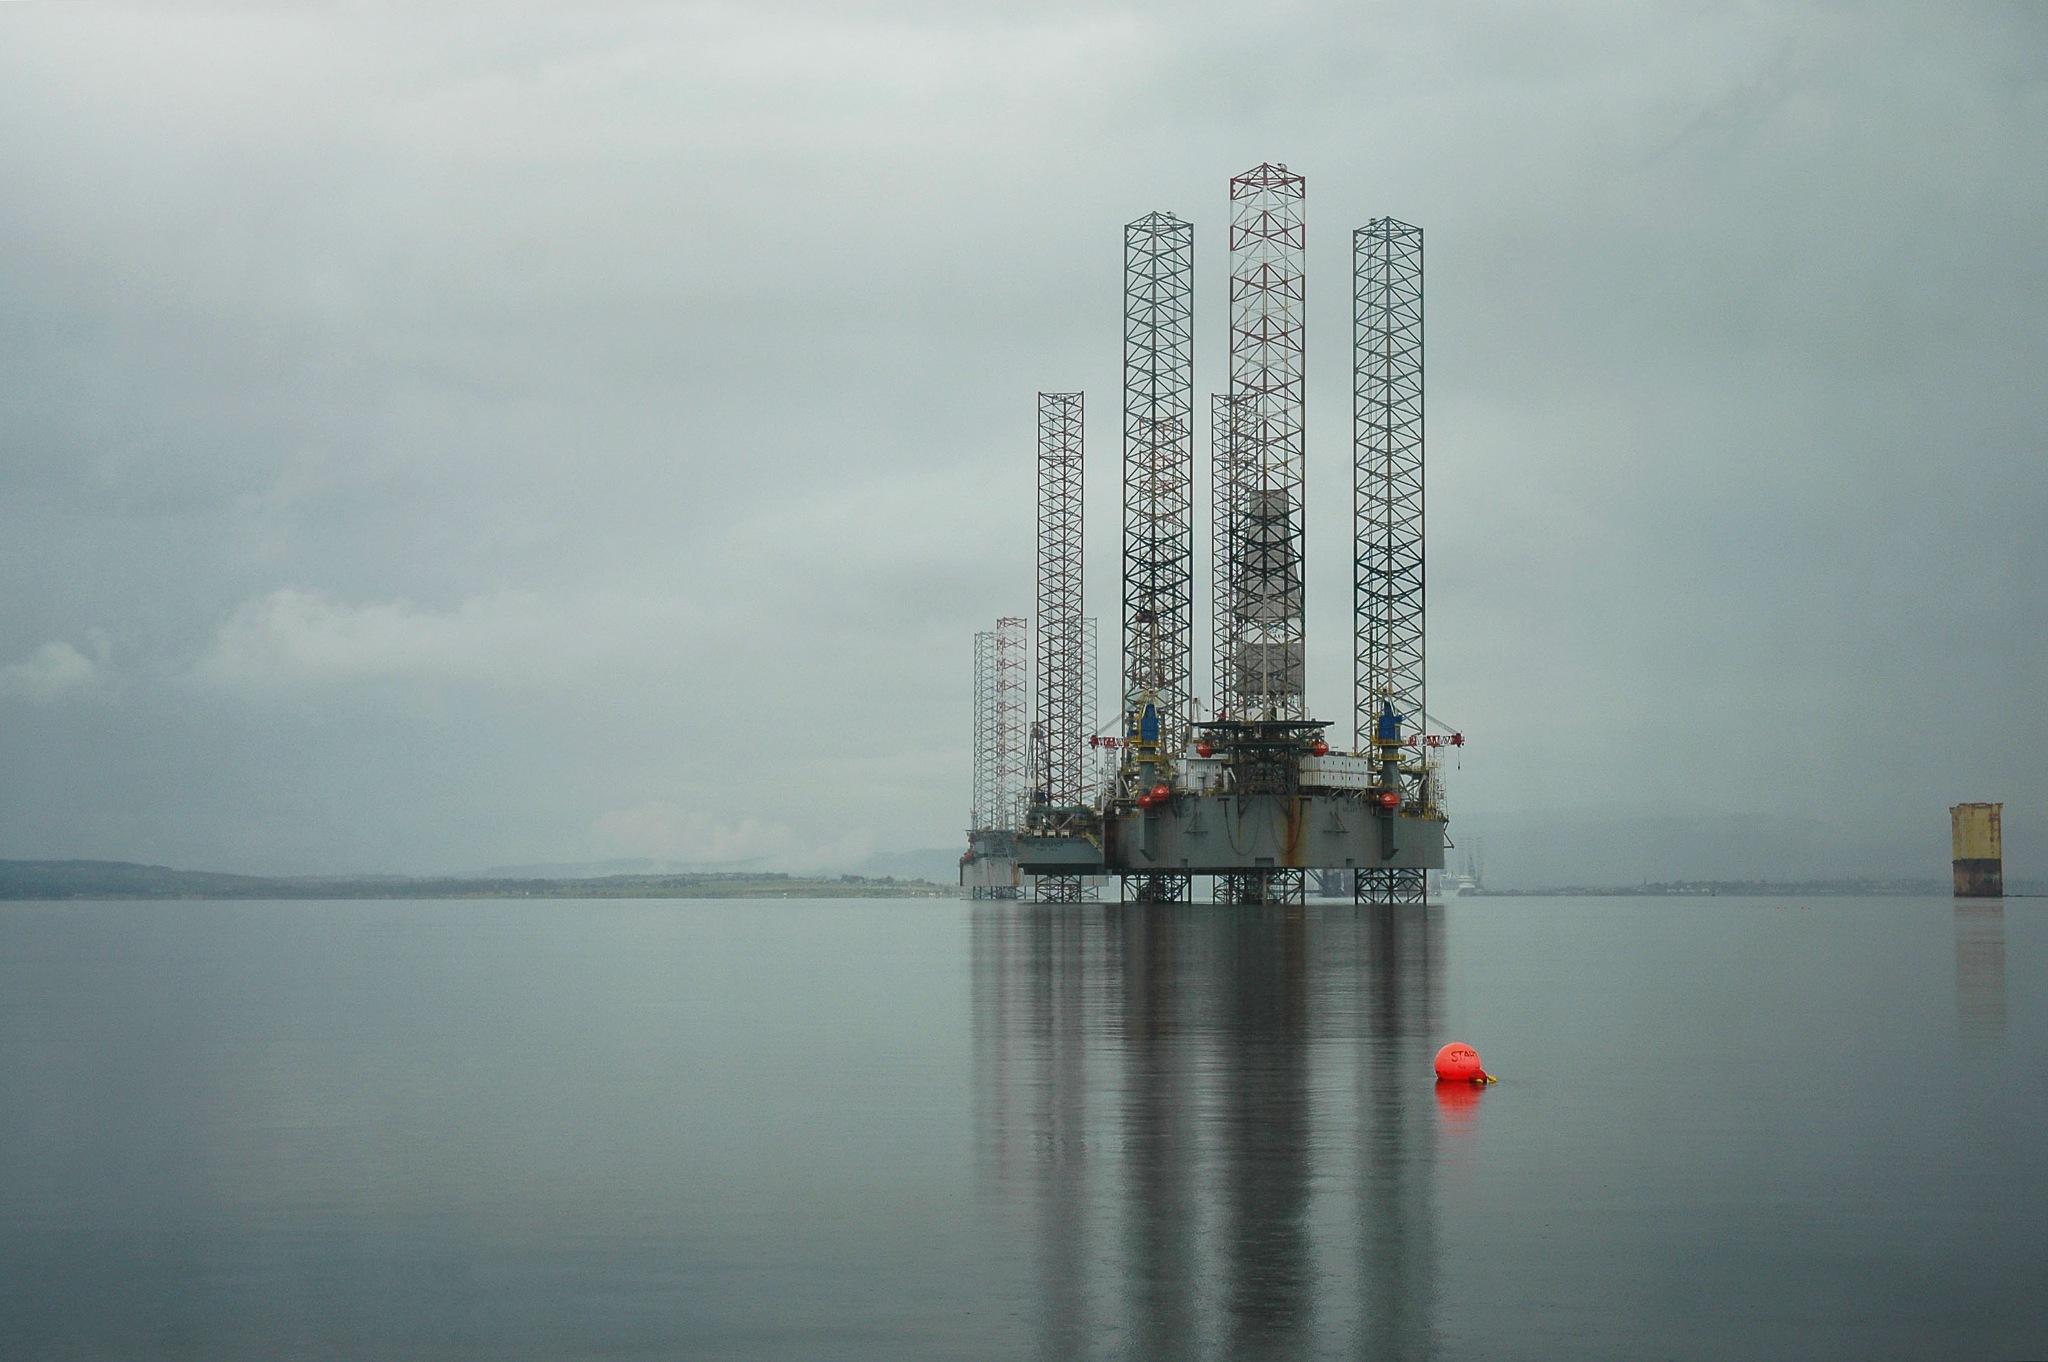 Oil Rigs by Tom Arnold